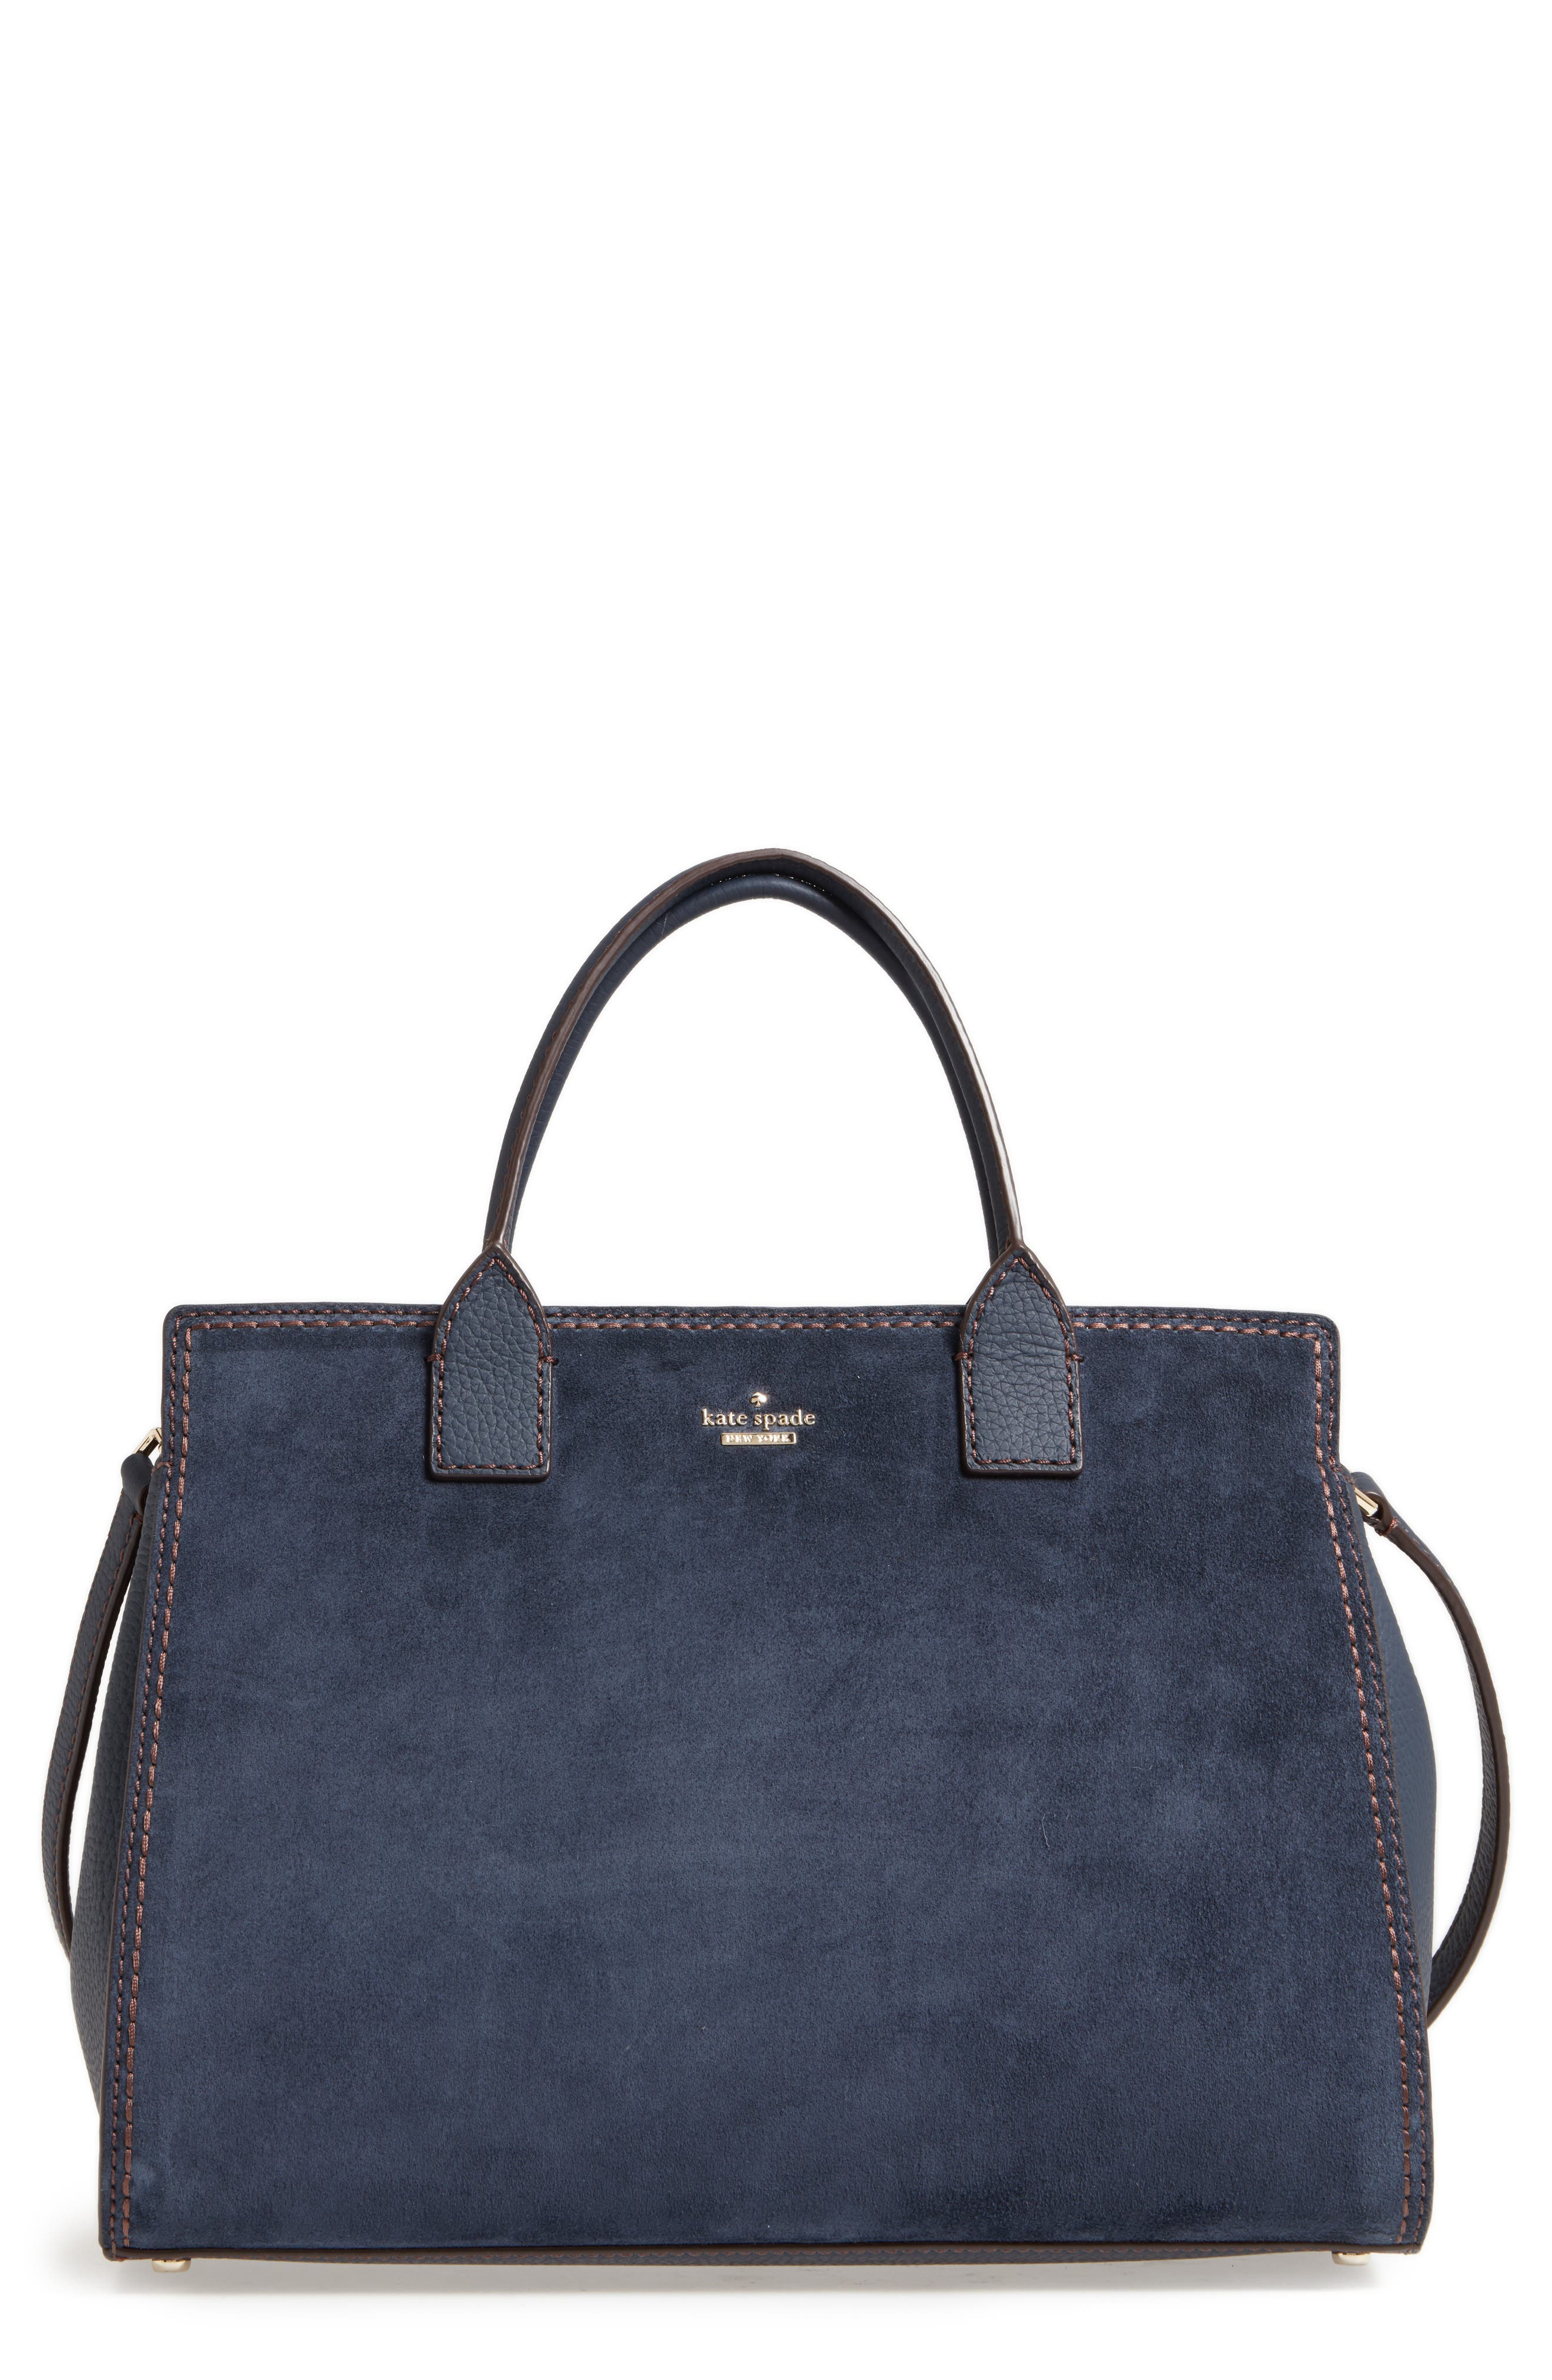 kate spade new york dunne lane lake suede satchel